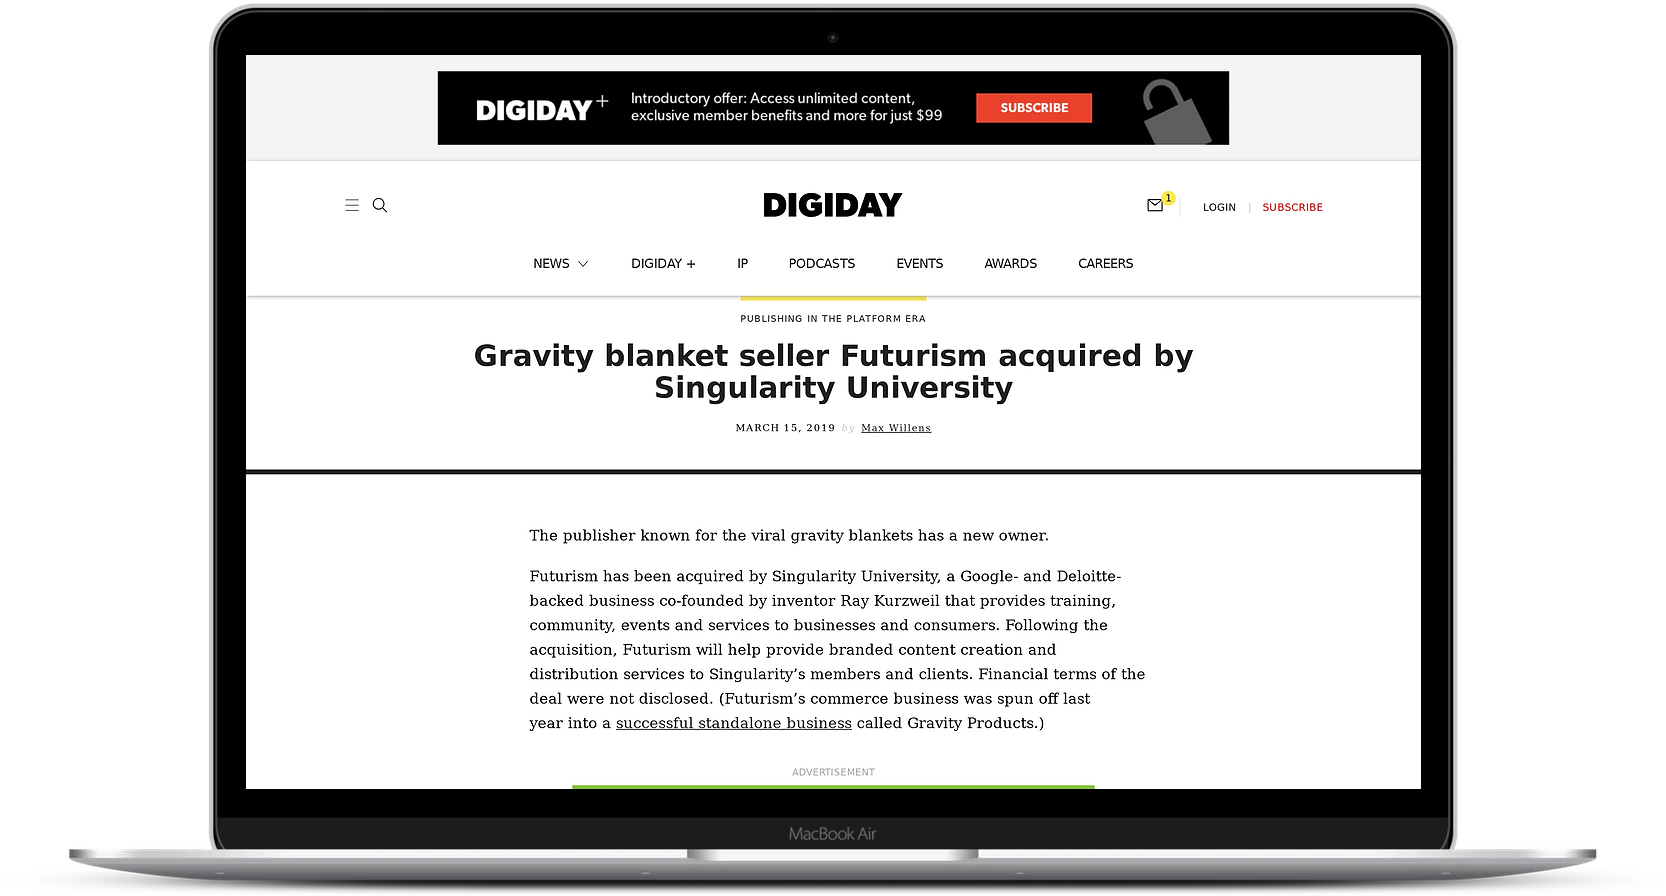 Digiday_Gravity_Futurism.png